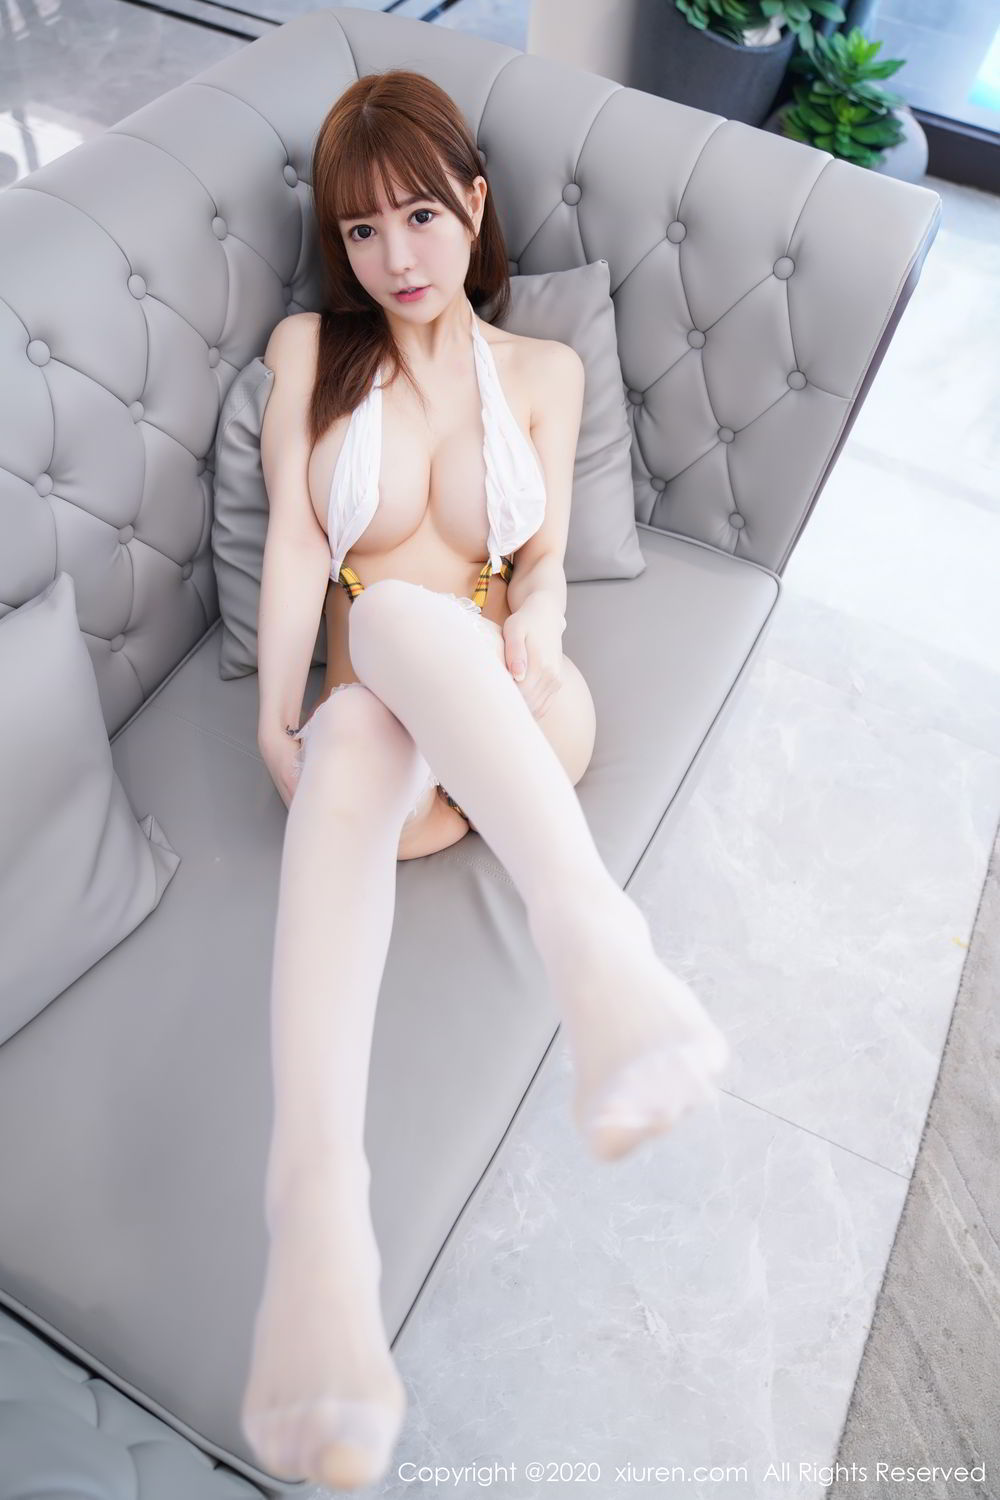 [XiuRen] Vol.2115 Uu Jiang 24P, Baby Face Big Boobs, Cute, UU Jiang, Xiuren